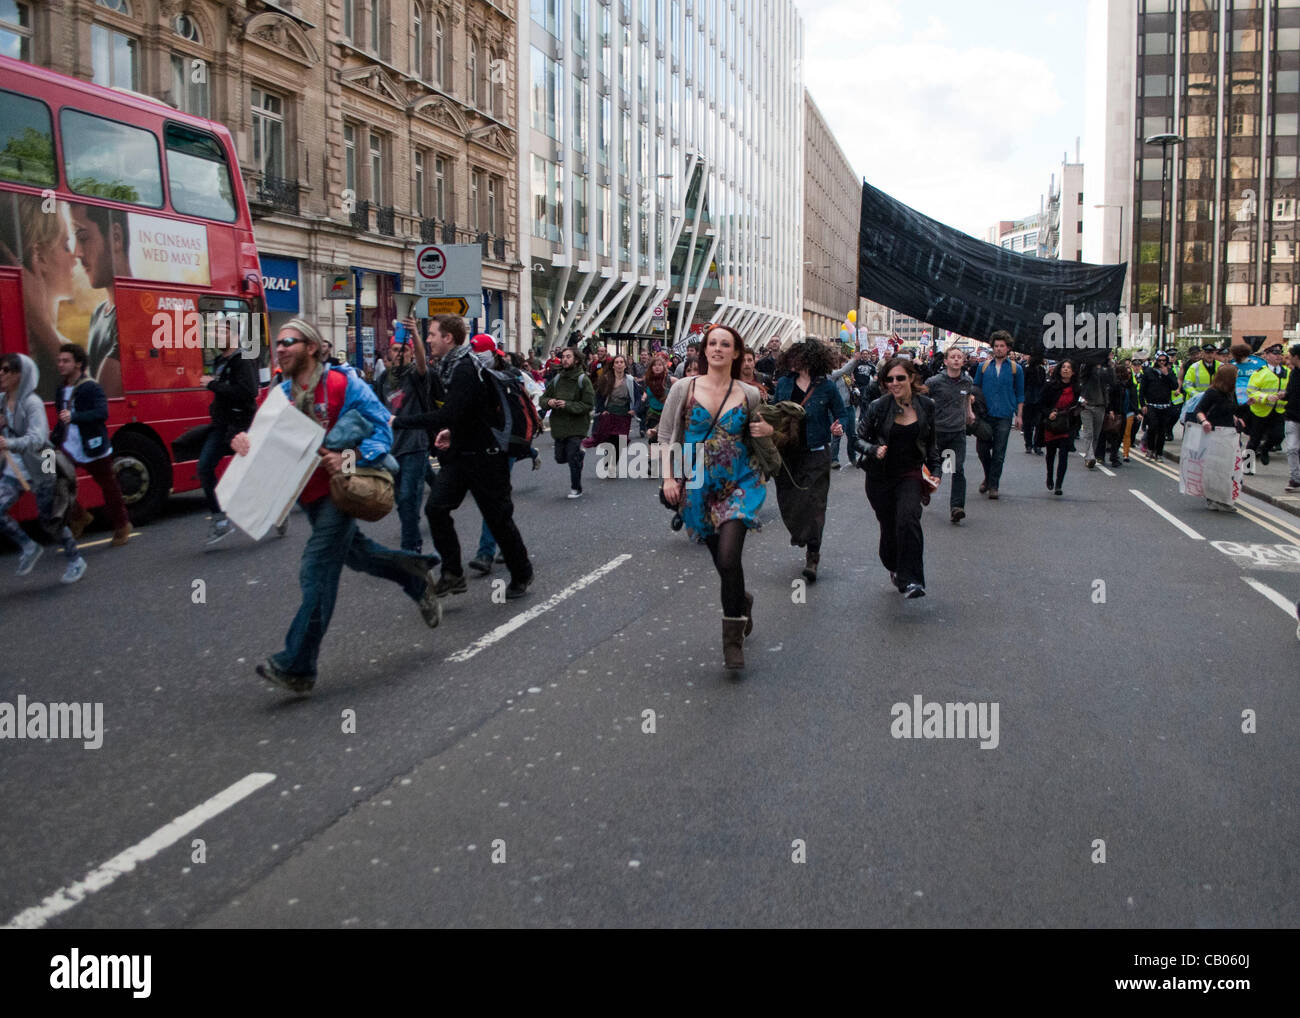 London, UK. 12/05/12. Occupy protesters running during a roving demonstration in the City of London area. The protesters - Stock Image